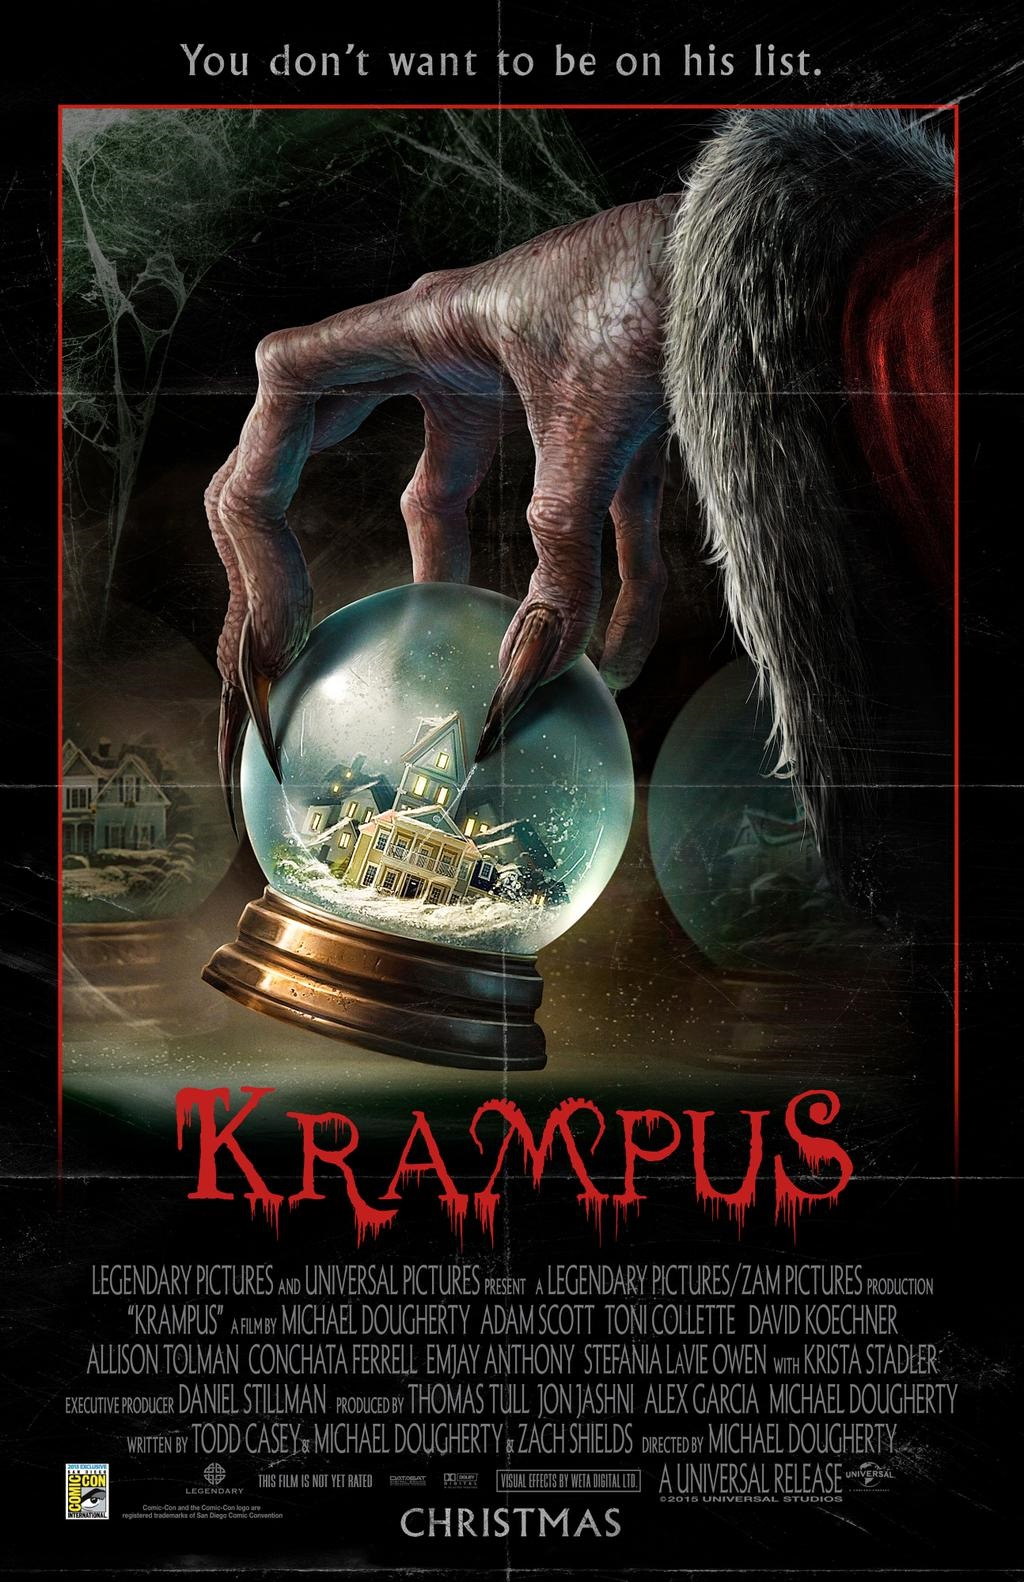 SDCC \'15: The Poster For KRAMPUS!